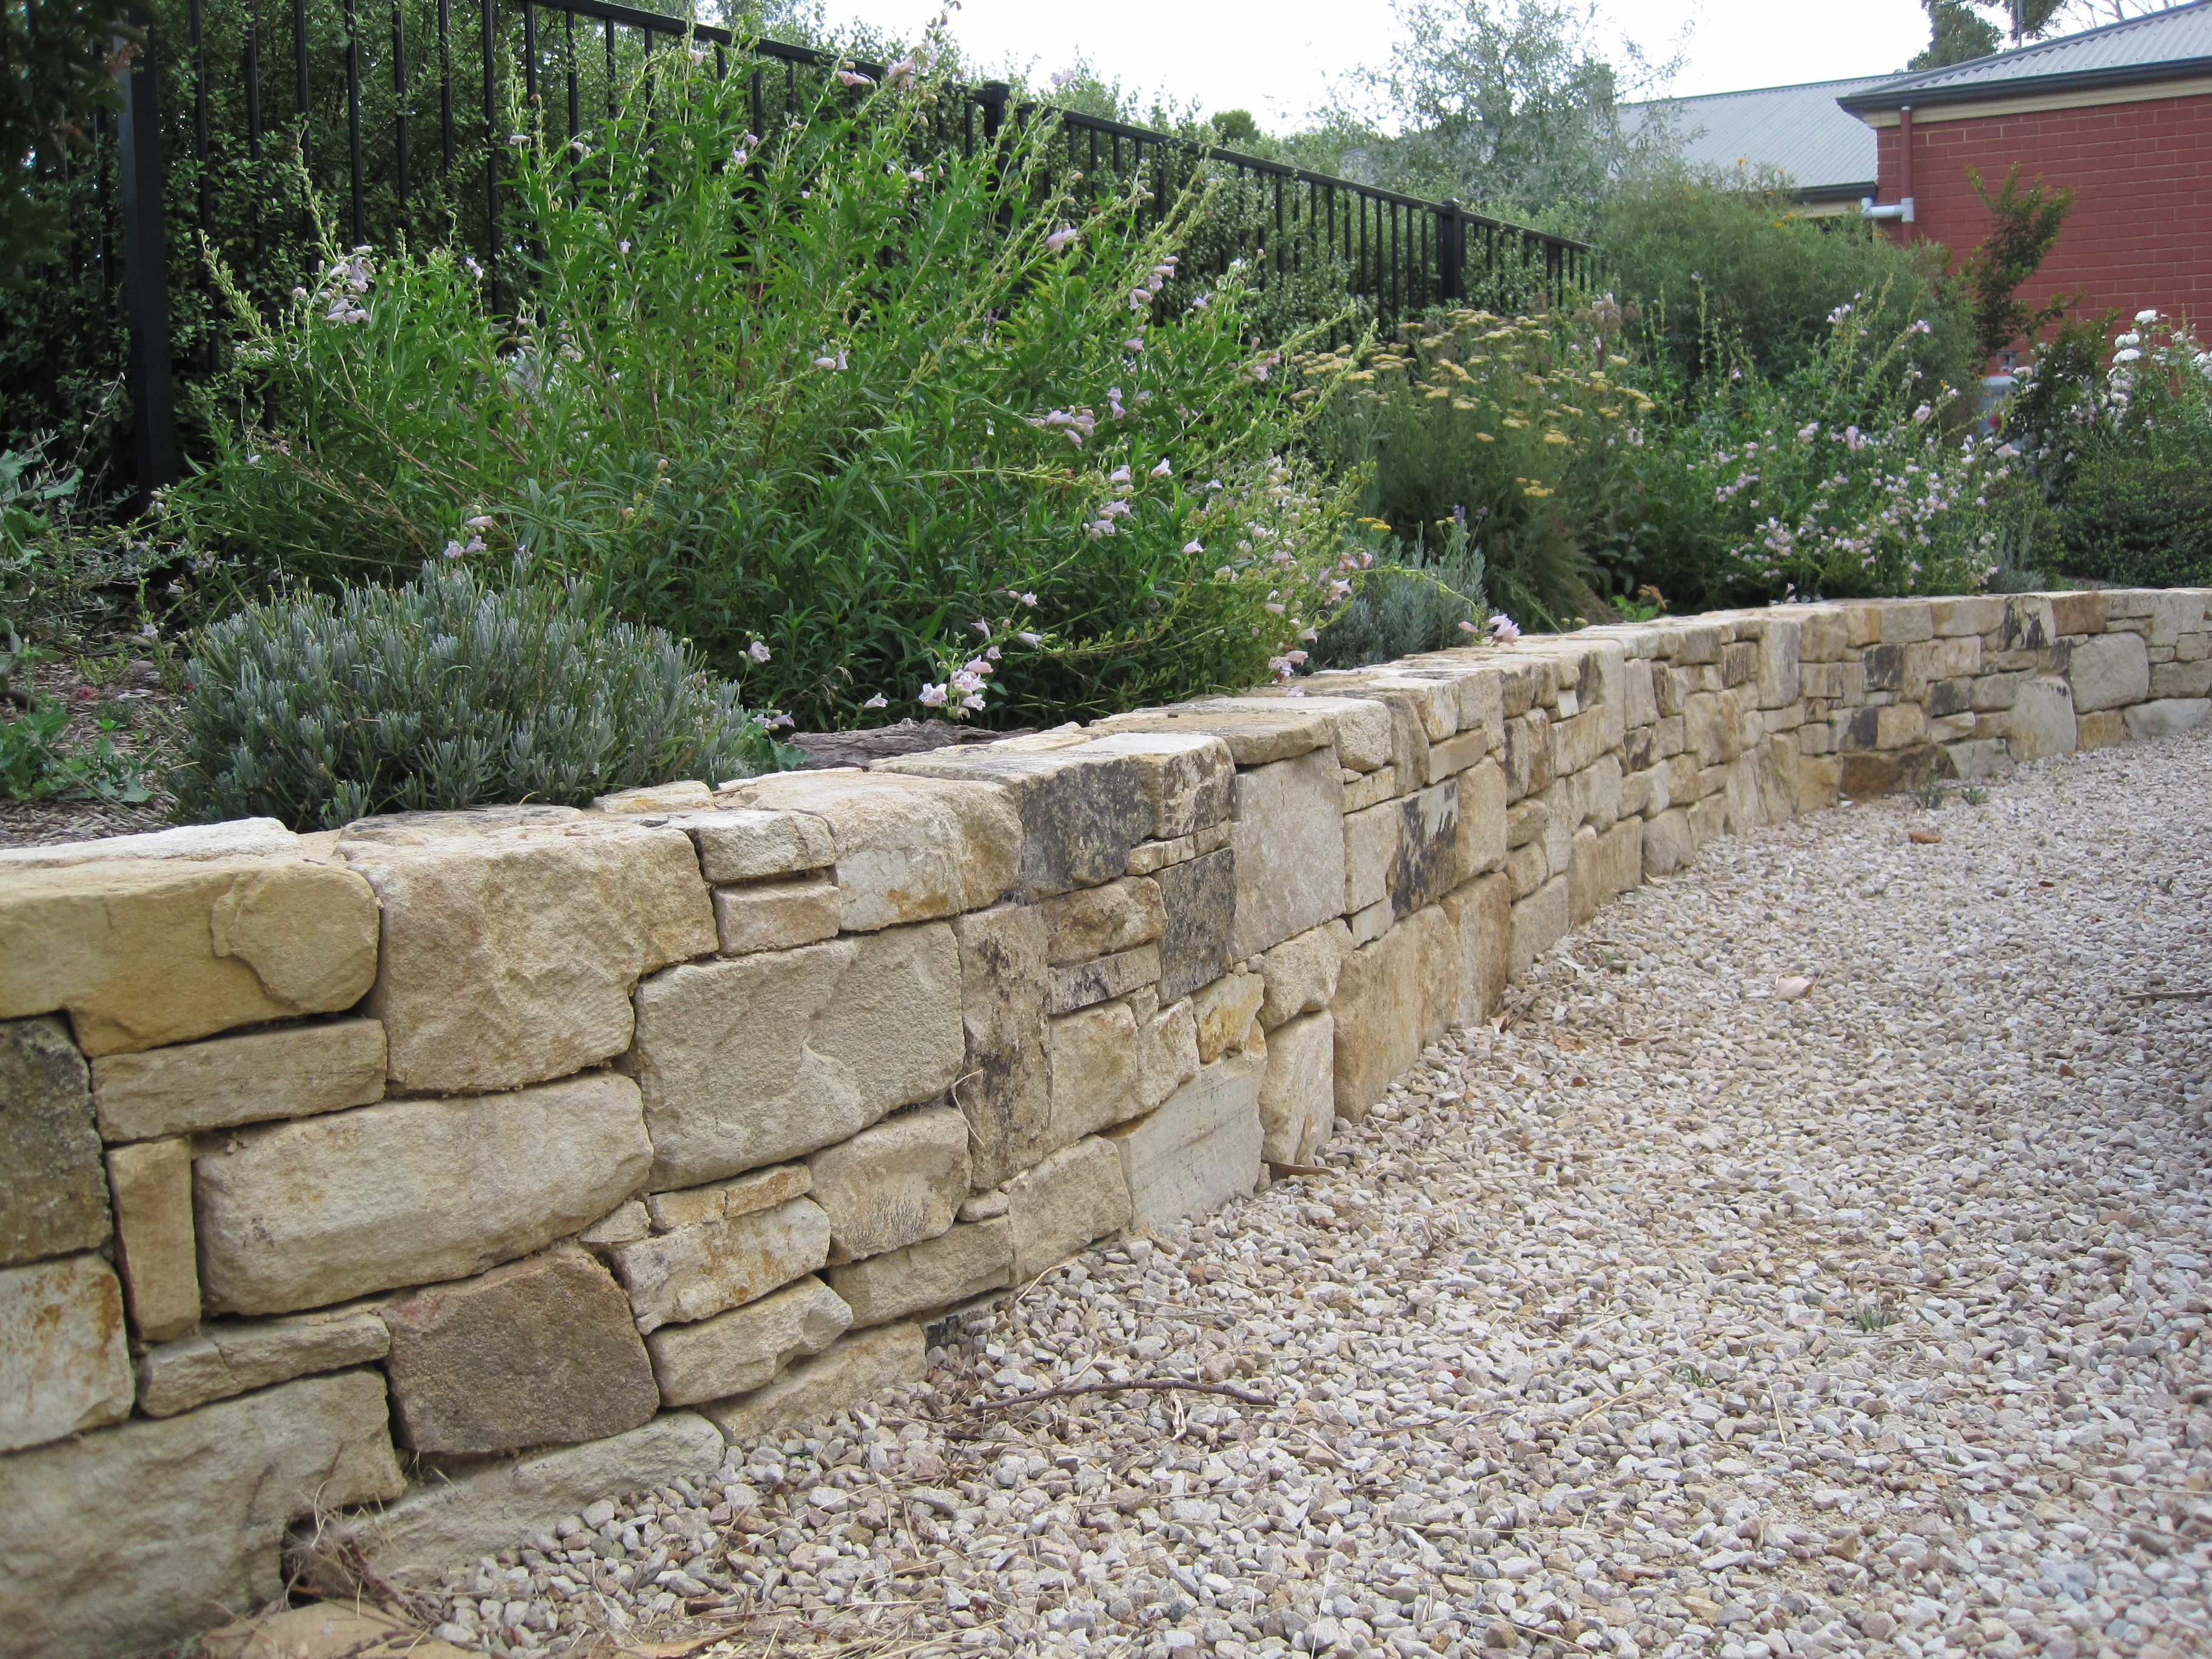 Exterior Rock Landscaping Scenic Landscape Gravel Retaining Wall Natural Stone Retaining Wall Landscape Design Stone Retaining Wall